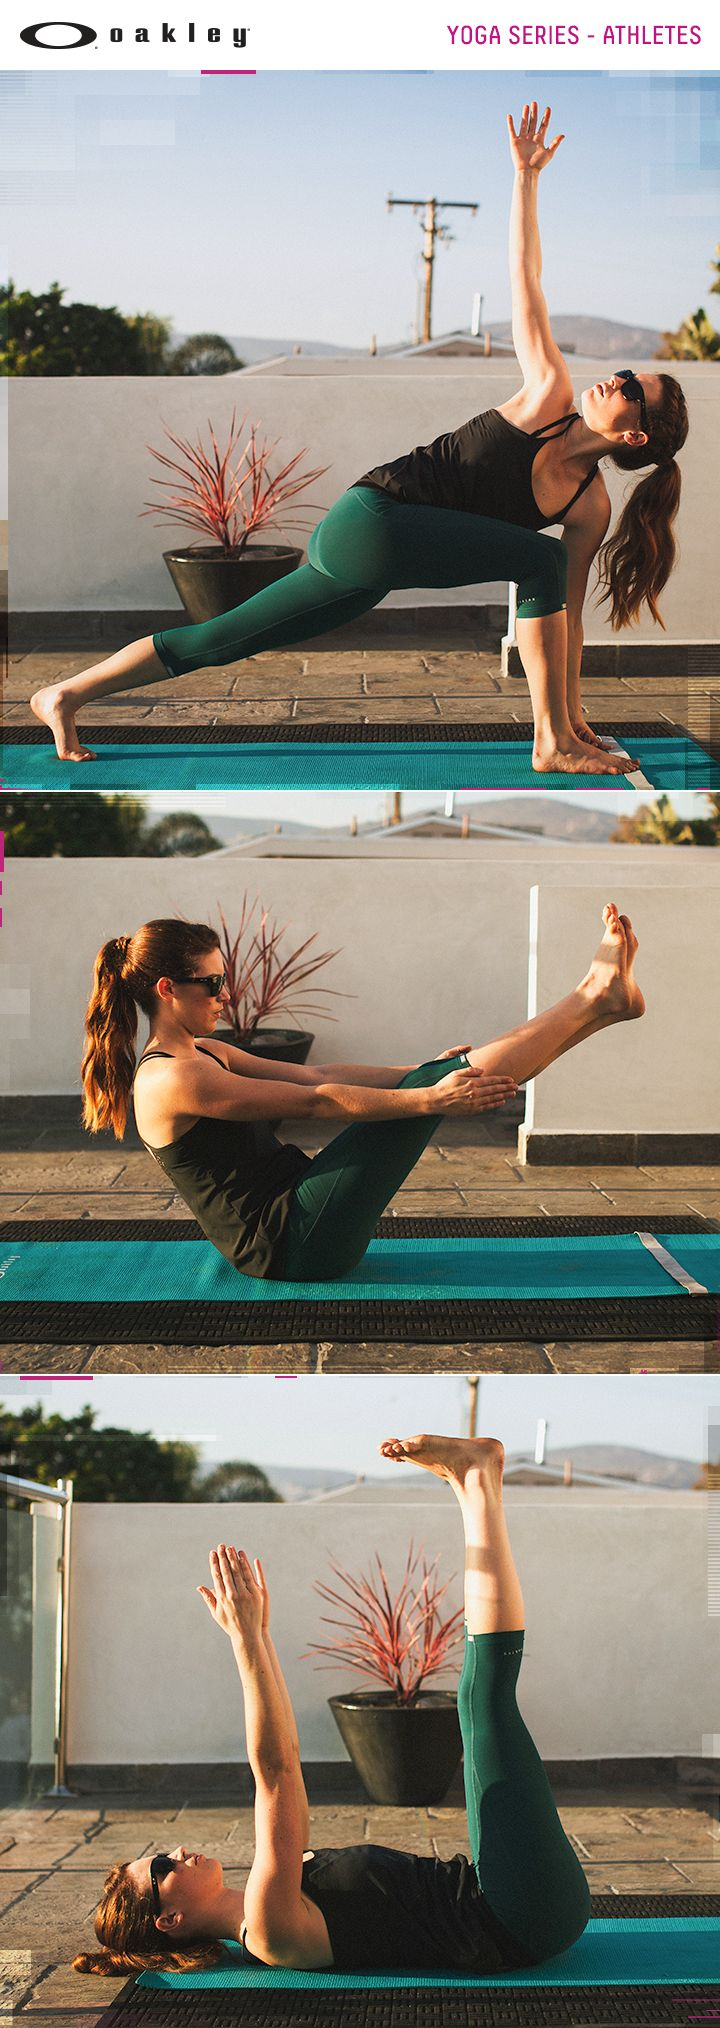 Lindsay Gonzalez and Caitlin O'Hara move you through an athletic sequence for some fierce and fiery yoga moves for athletes. Video series. National Yoga Month. Yoga for Athletes.